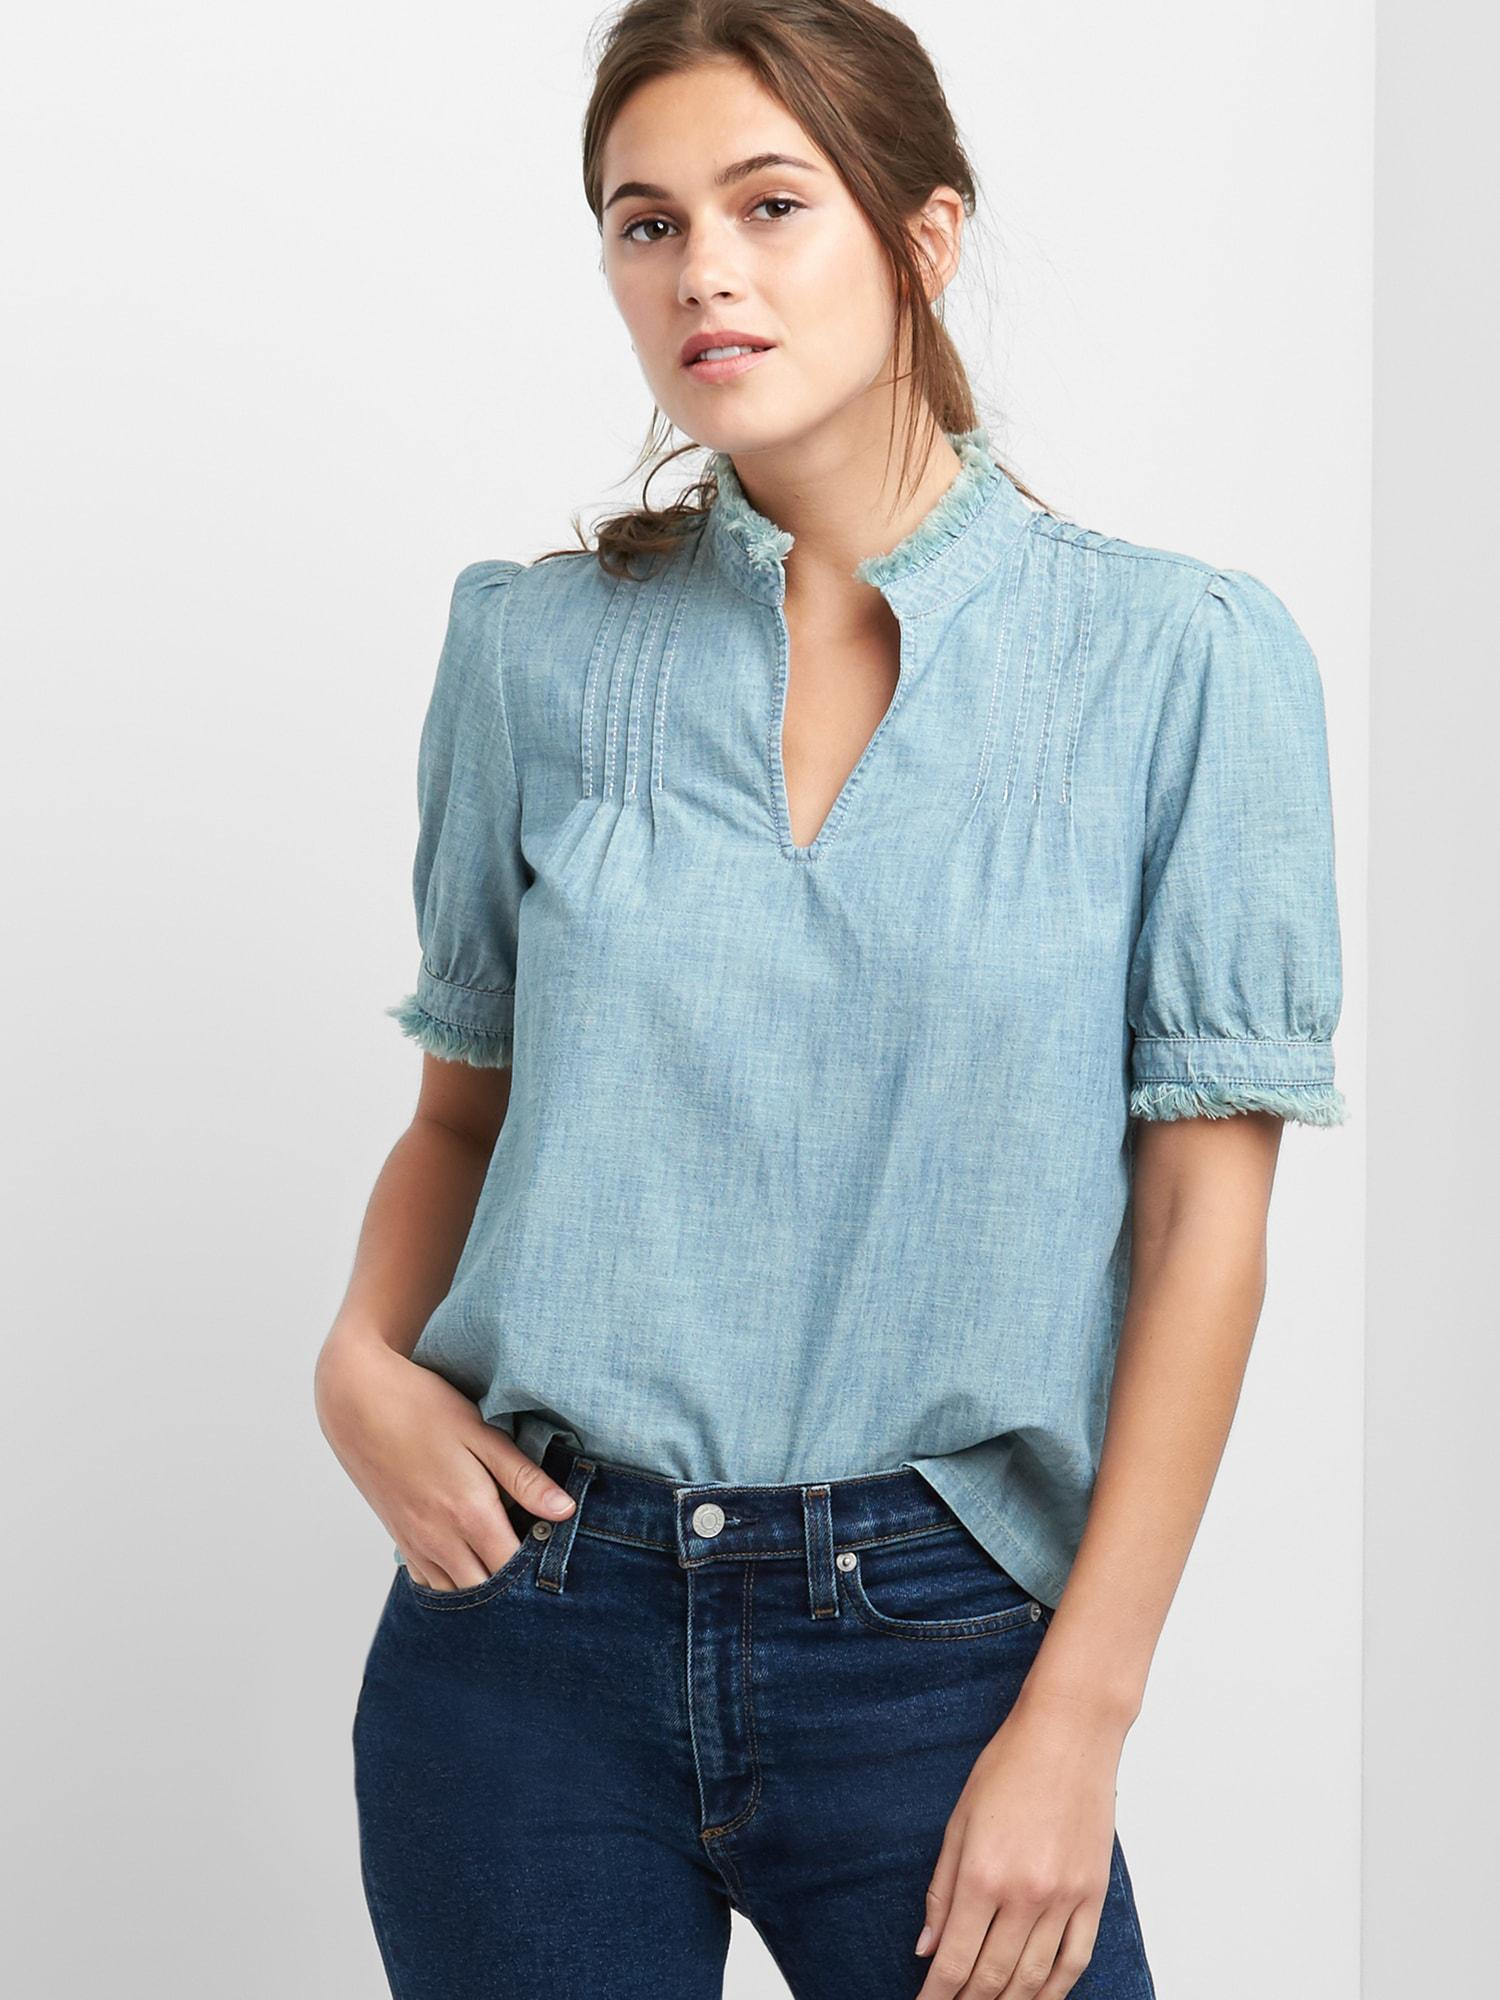 a9e76cab1b5cf Lyst - Gap Short Sleeve Pintuck Top In Chambray in Blue